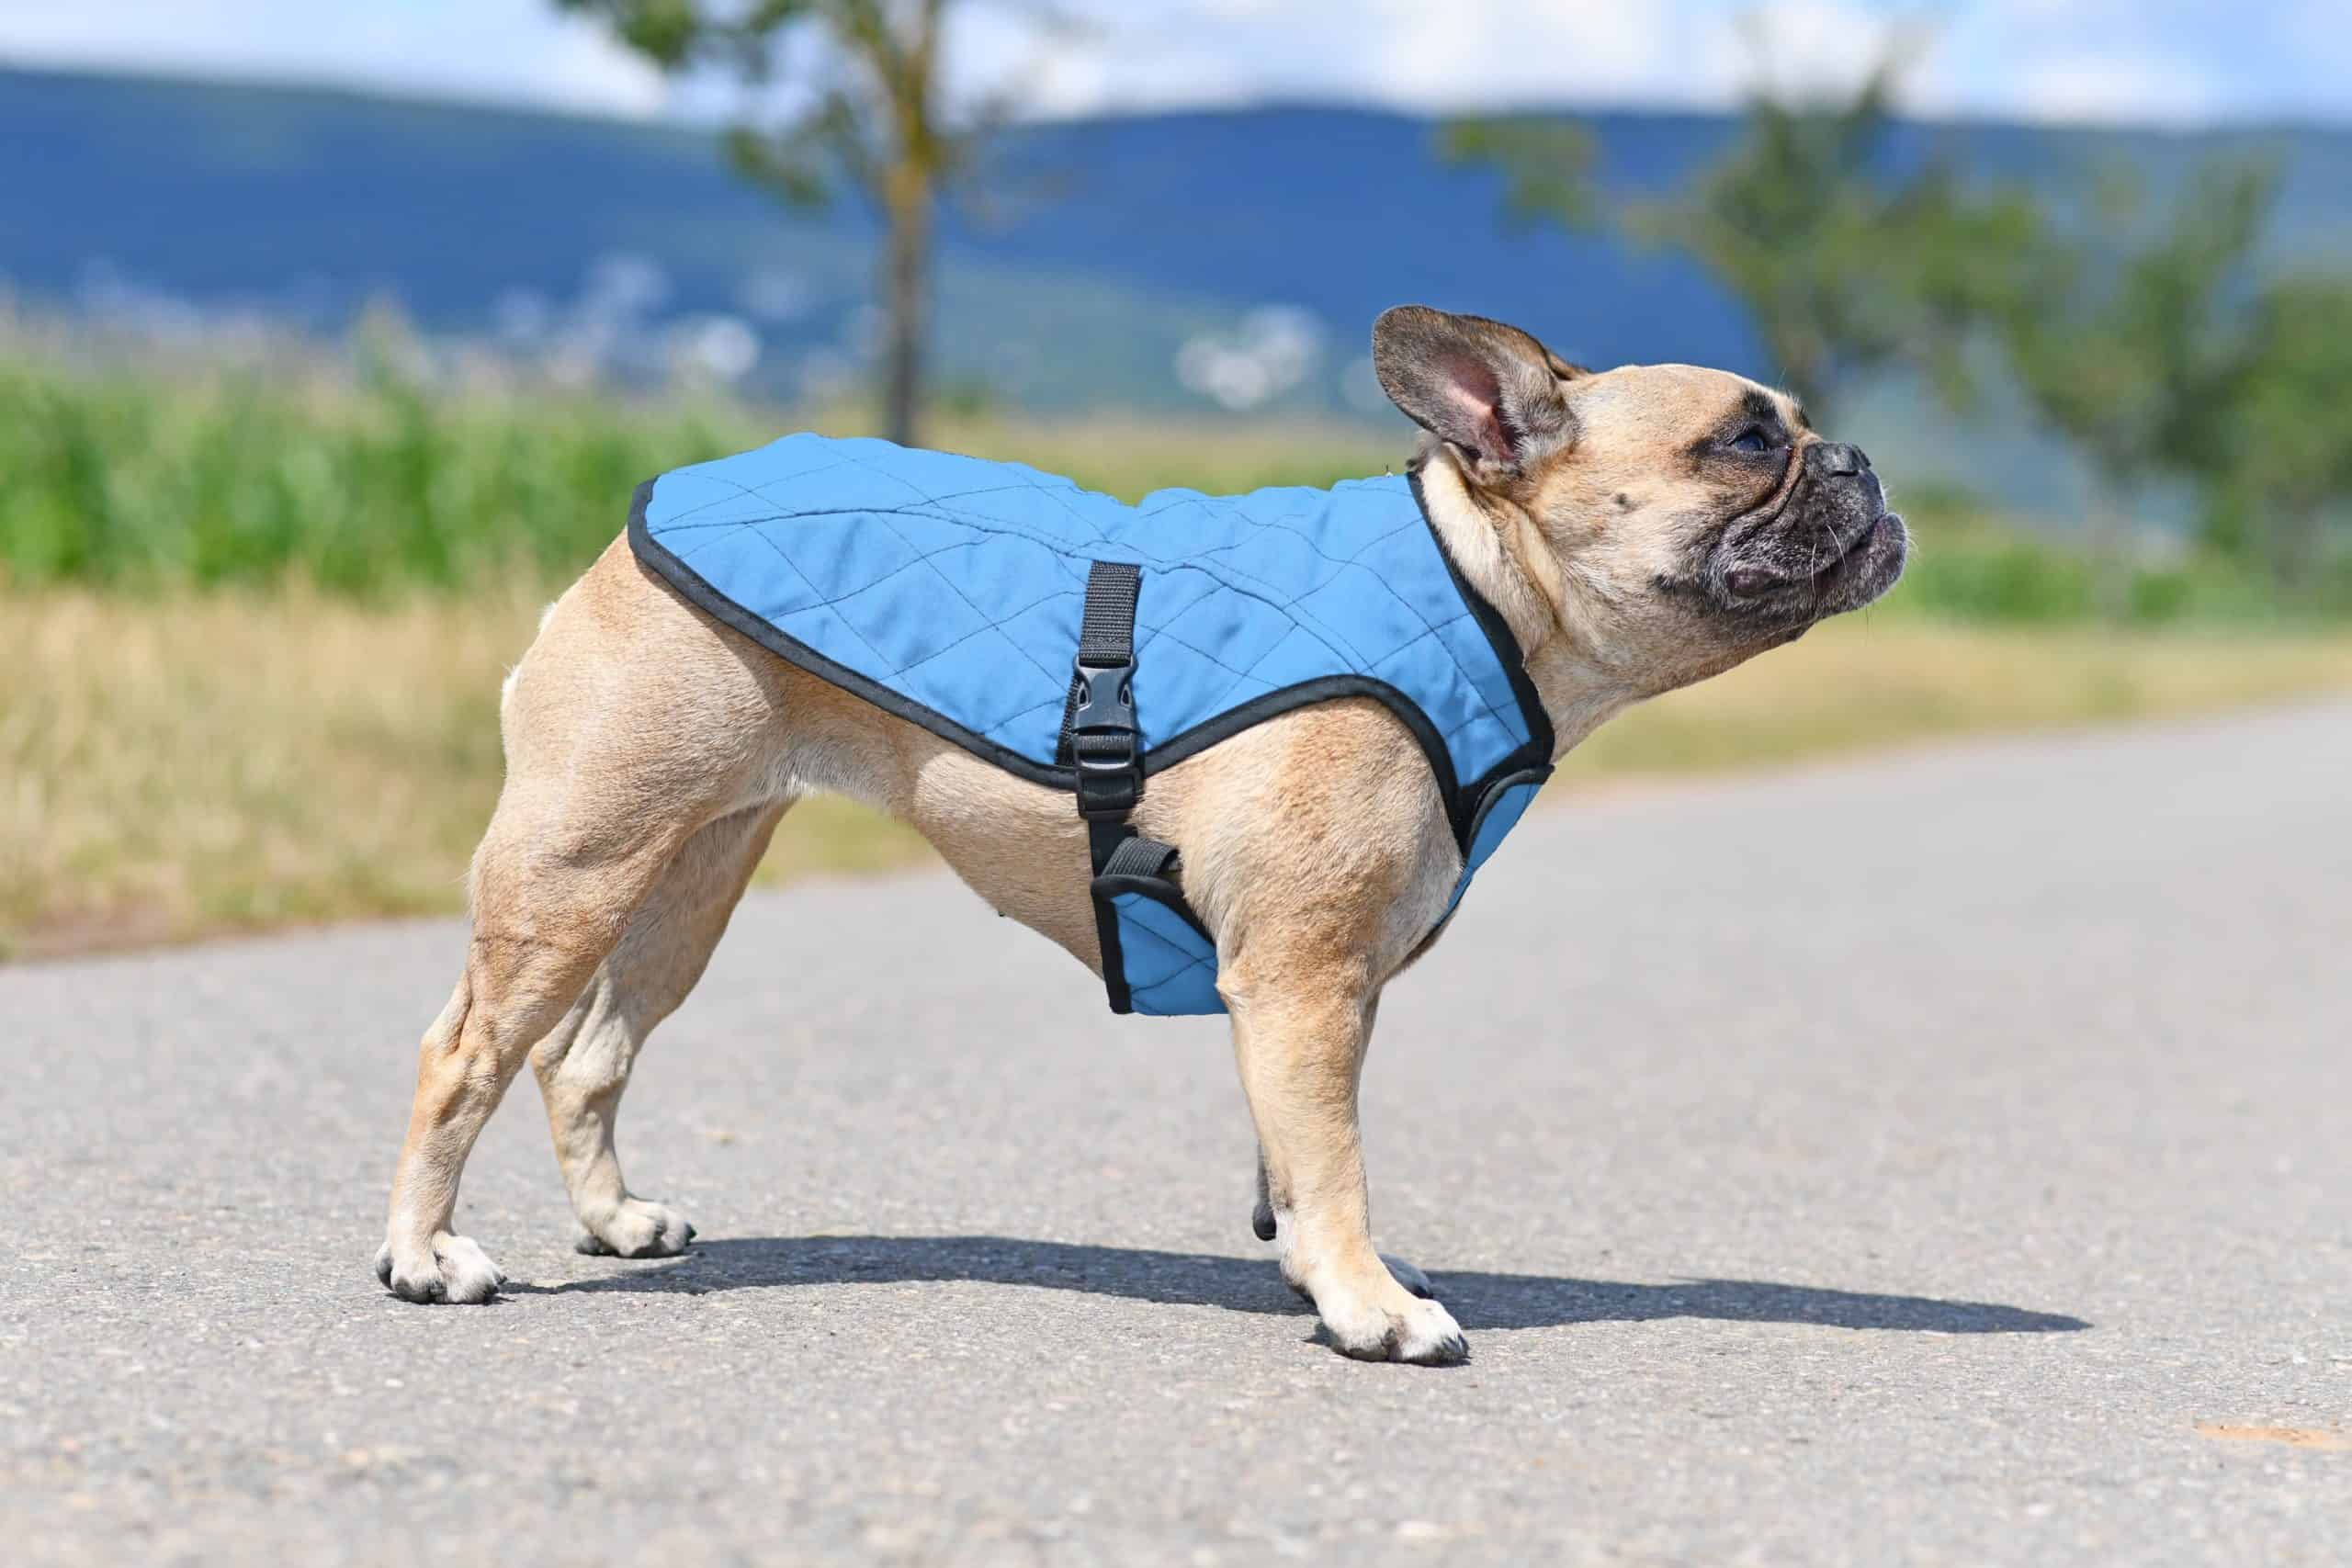 French bulldog models cooling vest. Health products for dogs like cooling vests help keep dogs cool on hot days.